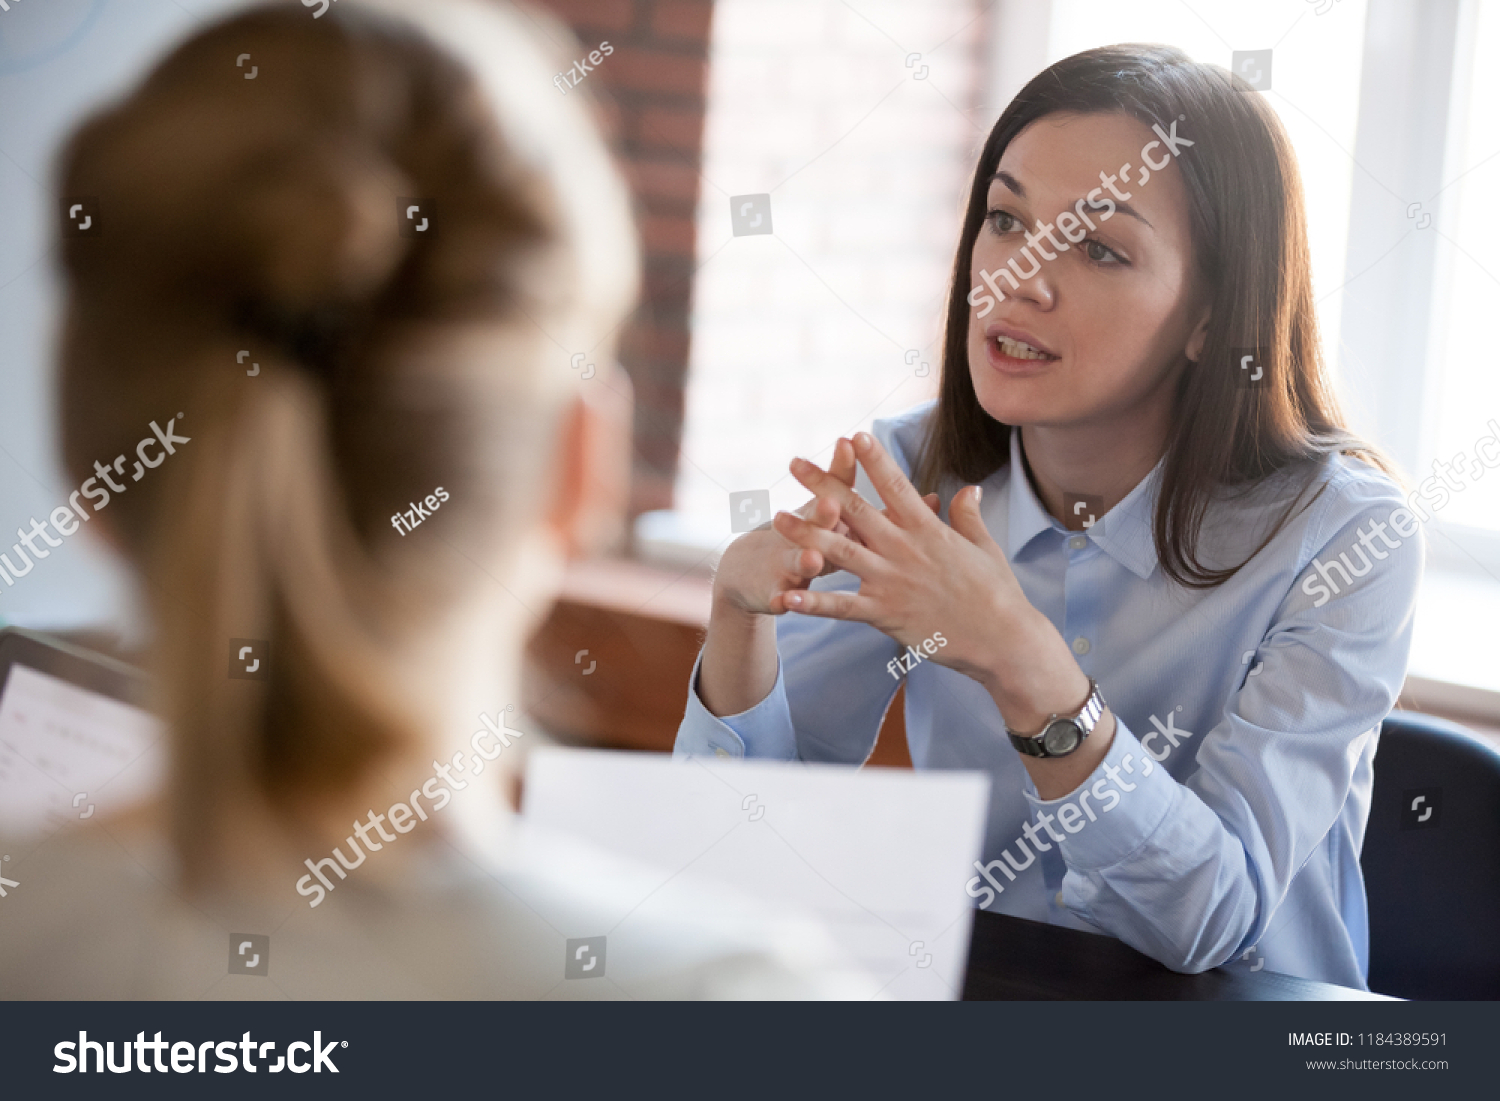 stock-photo-confident-focused-businesswoman-teacher-or-mentor-coach-speaking-to-business-people-at-1184389591